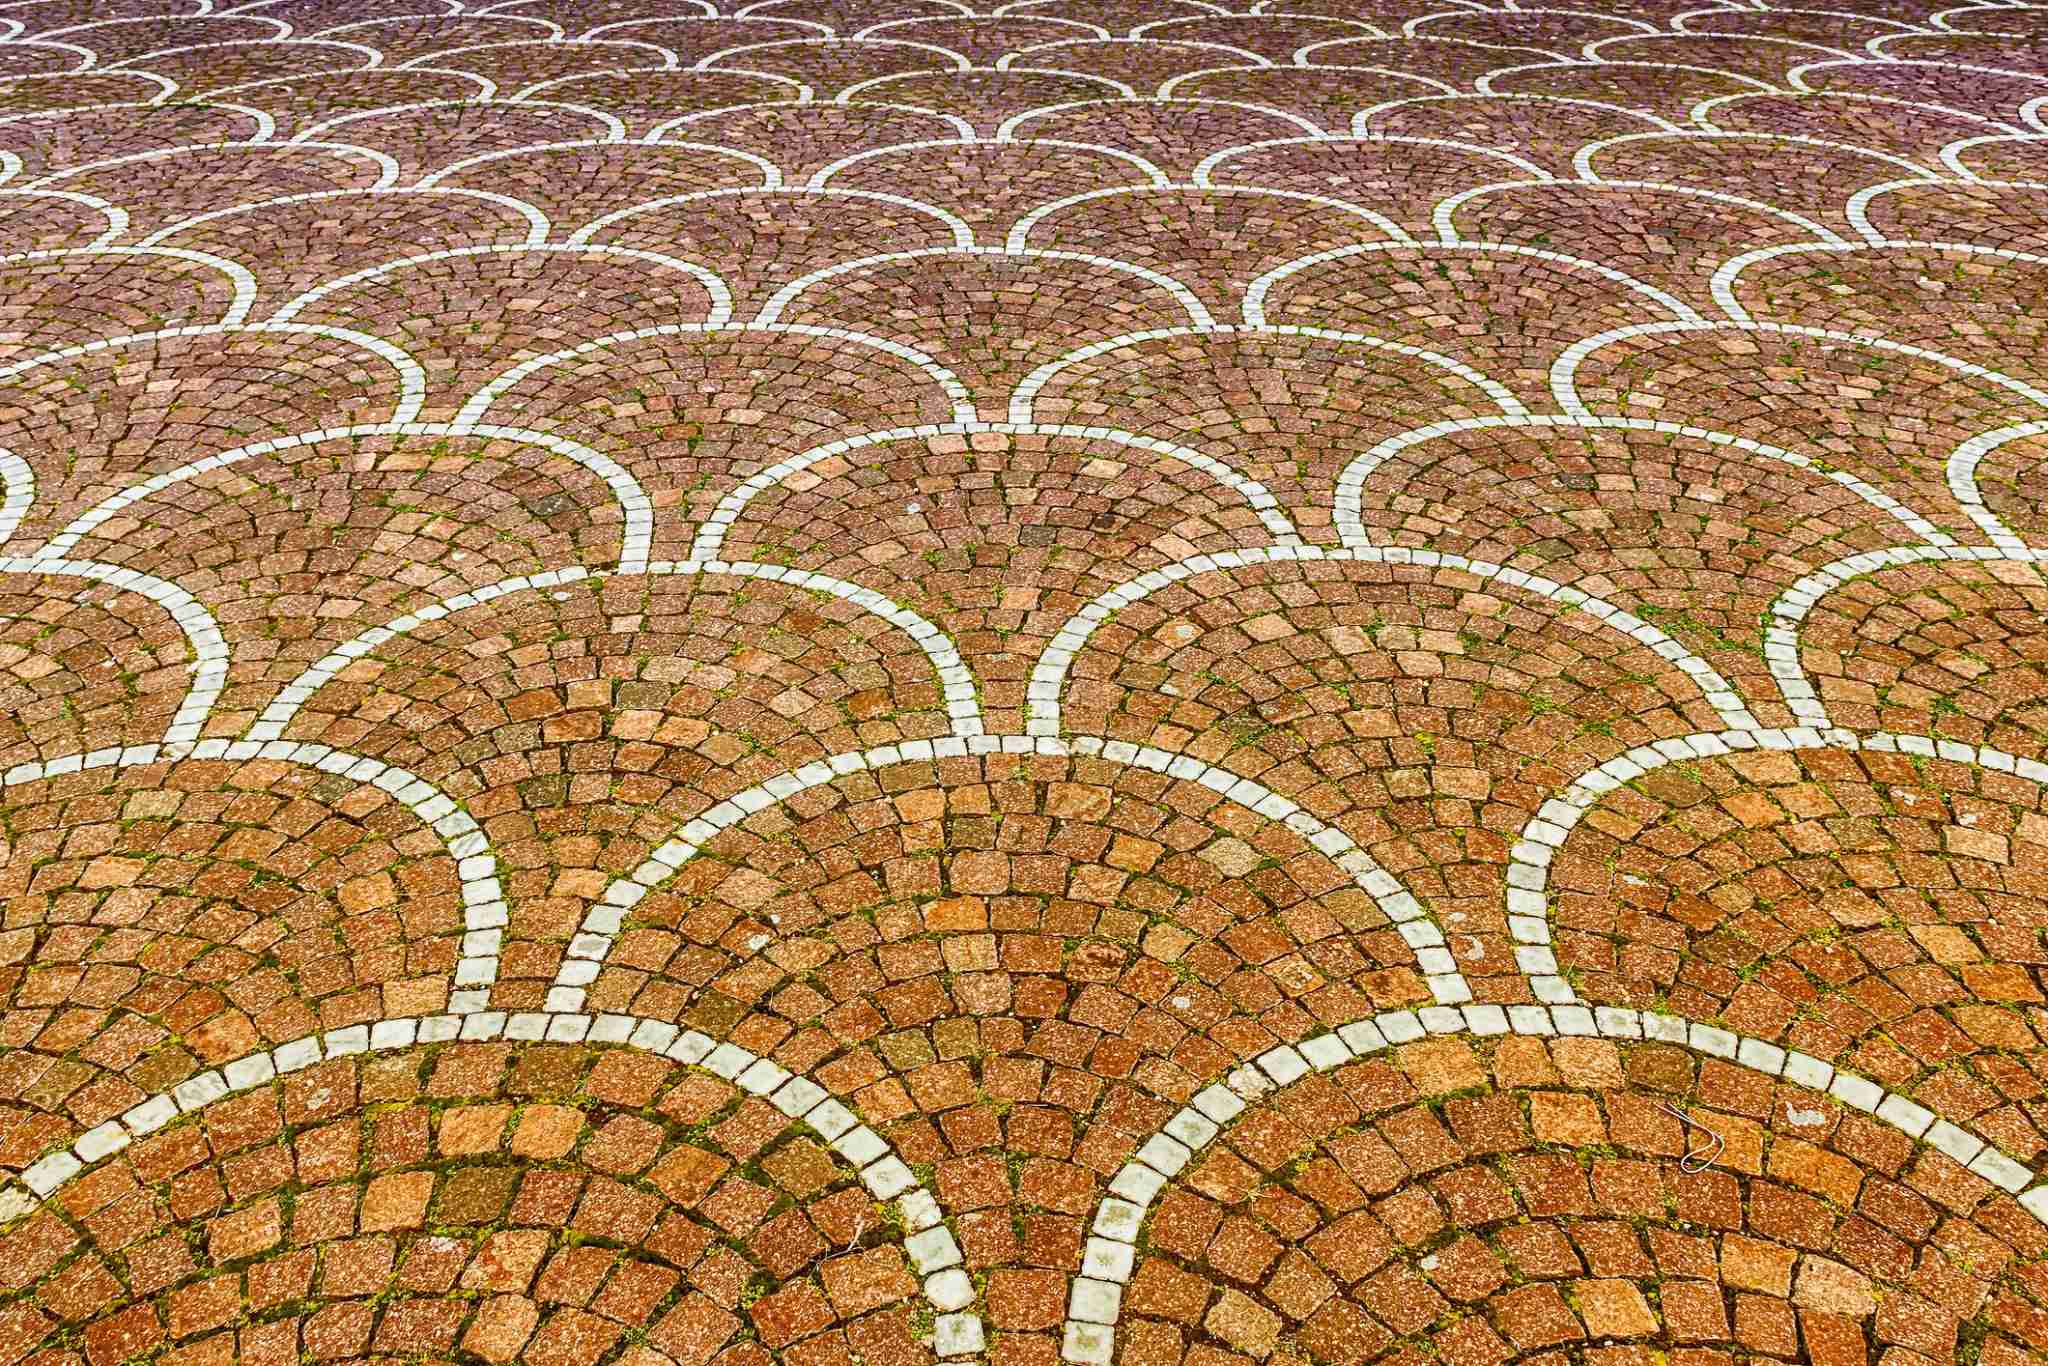 Sampietrini pavement in Rome, Italy. May be used as background (Marco Rubino / EyeEm via Getty Images)